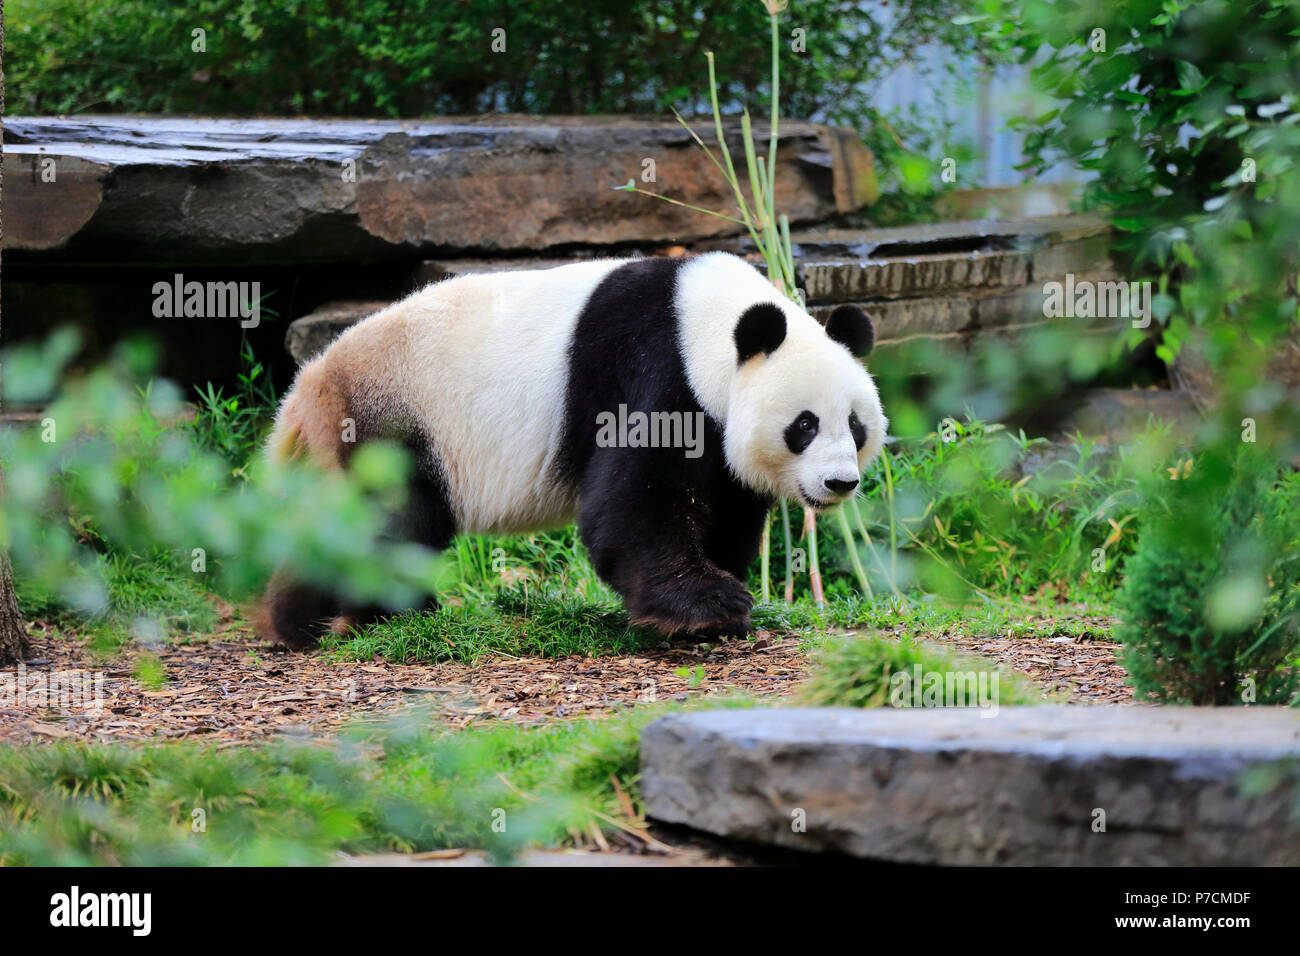 Giant Panda, adult walking, Adelaide, South Australia, Australia, (Ailuropoda melanoleuca) - Stock Image